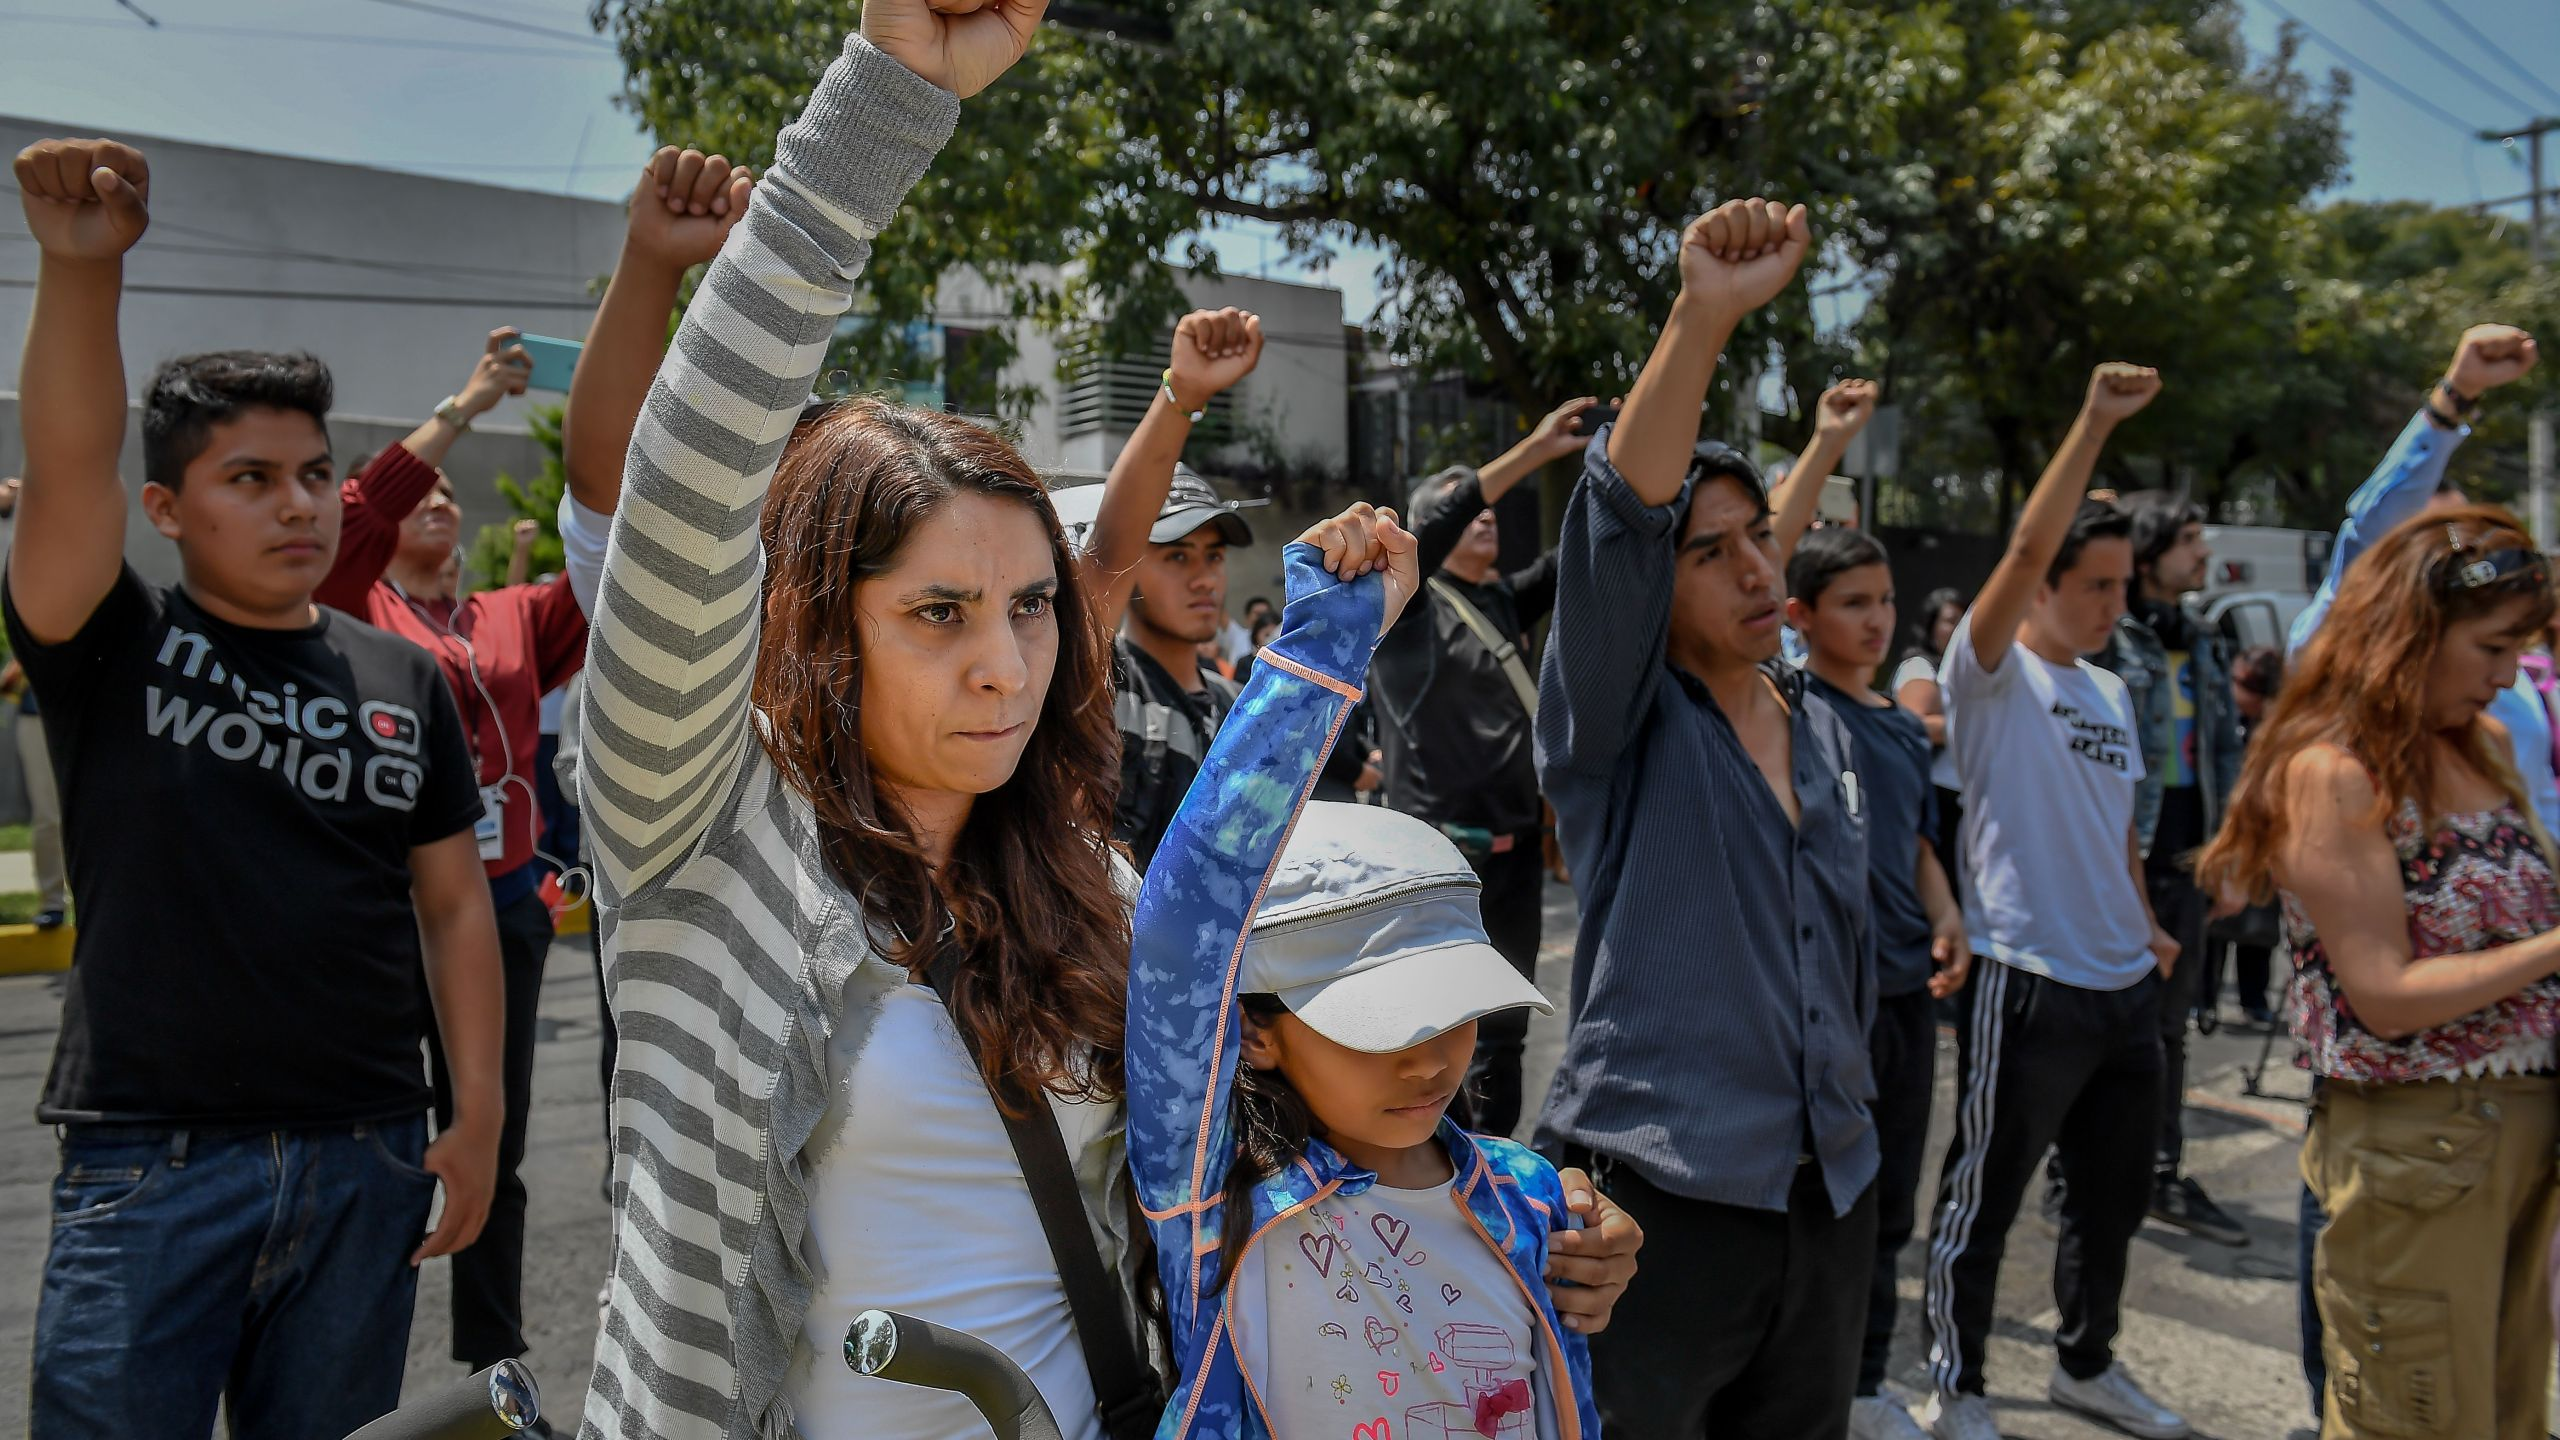 People pay homage to quake victims in Mexico City on Sept. 19, 2018, as Mexico marks the anniversaries of two deadly earthquakes that hit the country. (Credit: Omar Torres / AFP / Getty Images)